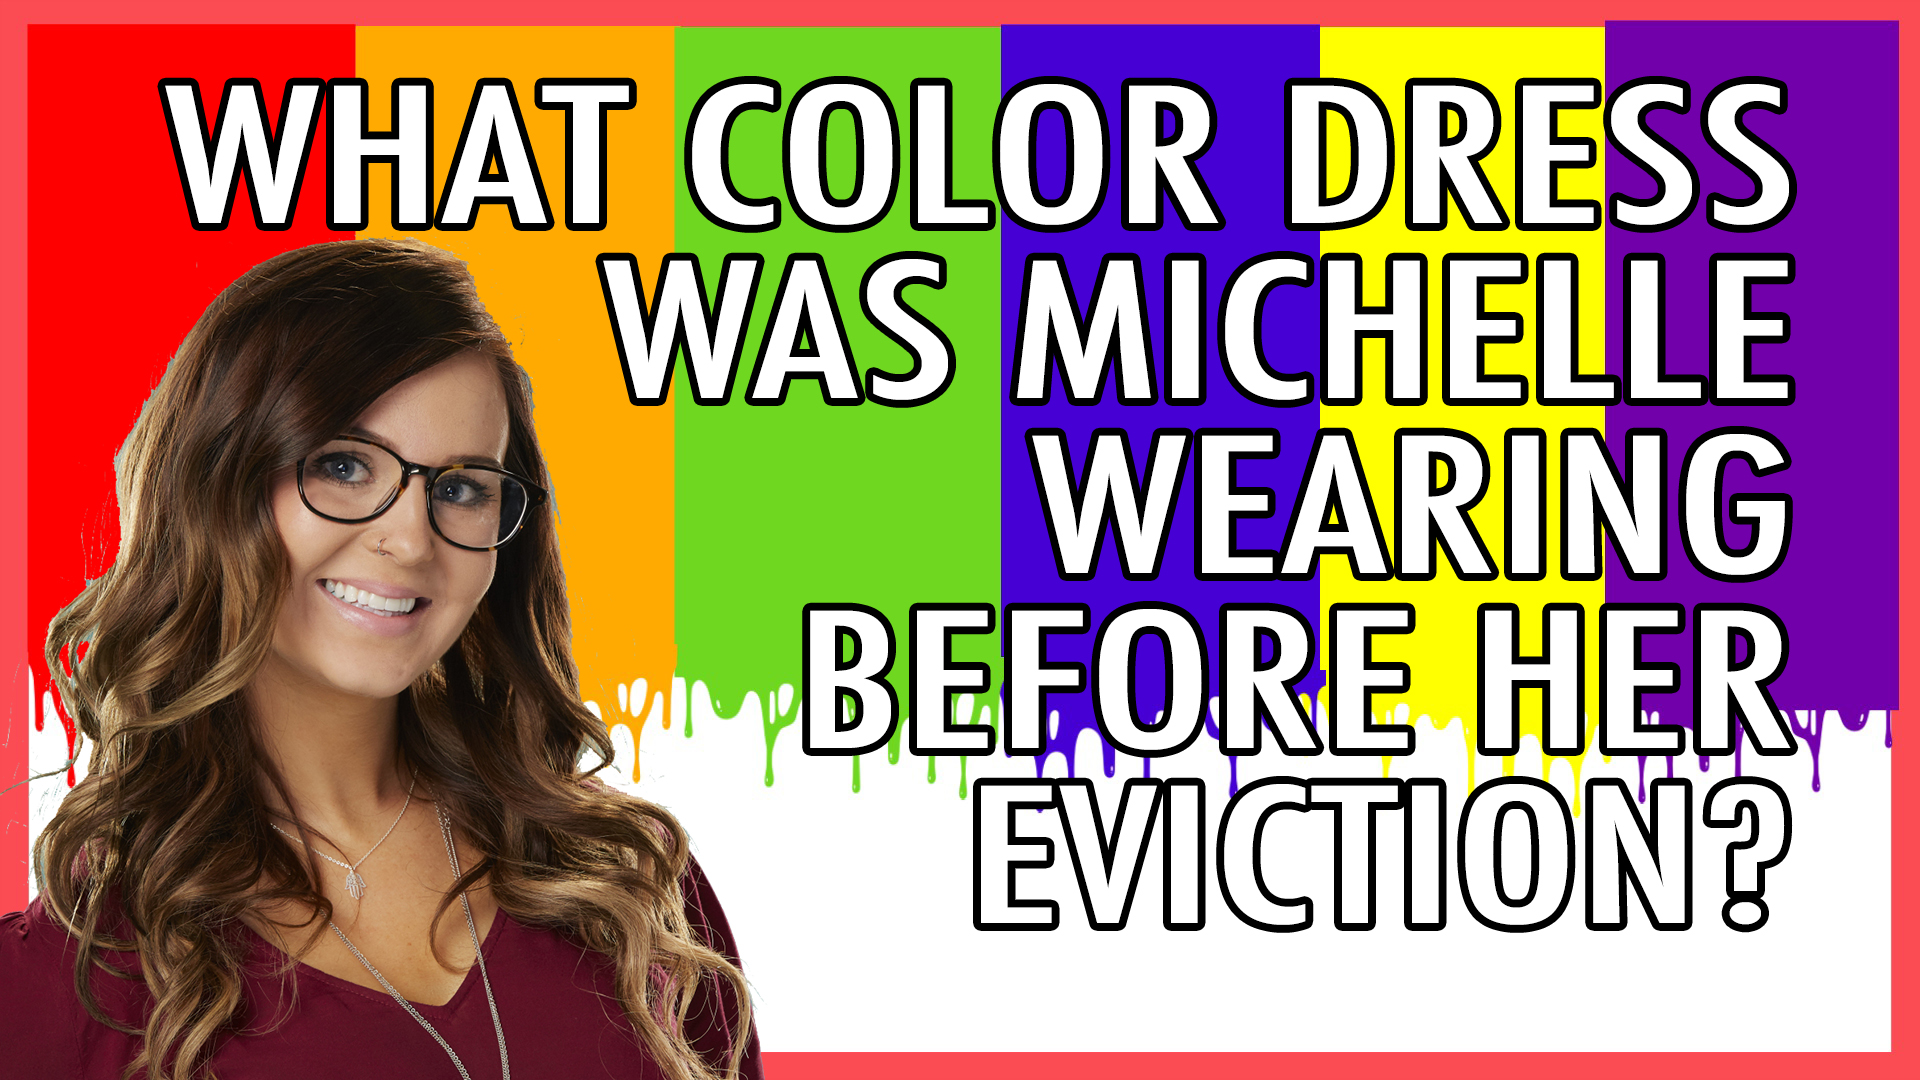 What color dress was Michelle wearing before her eviction?